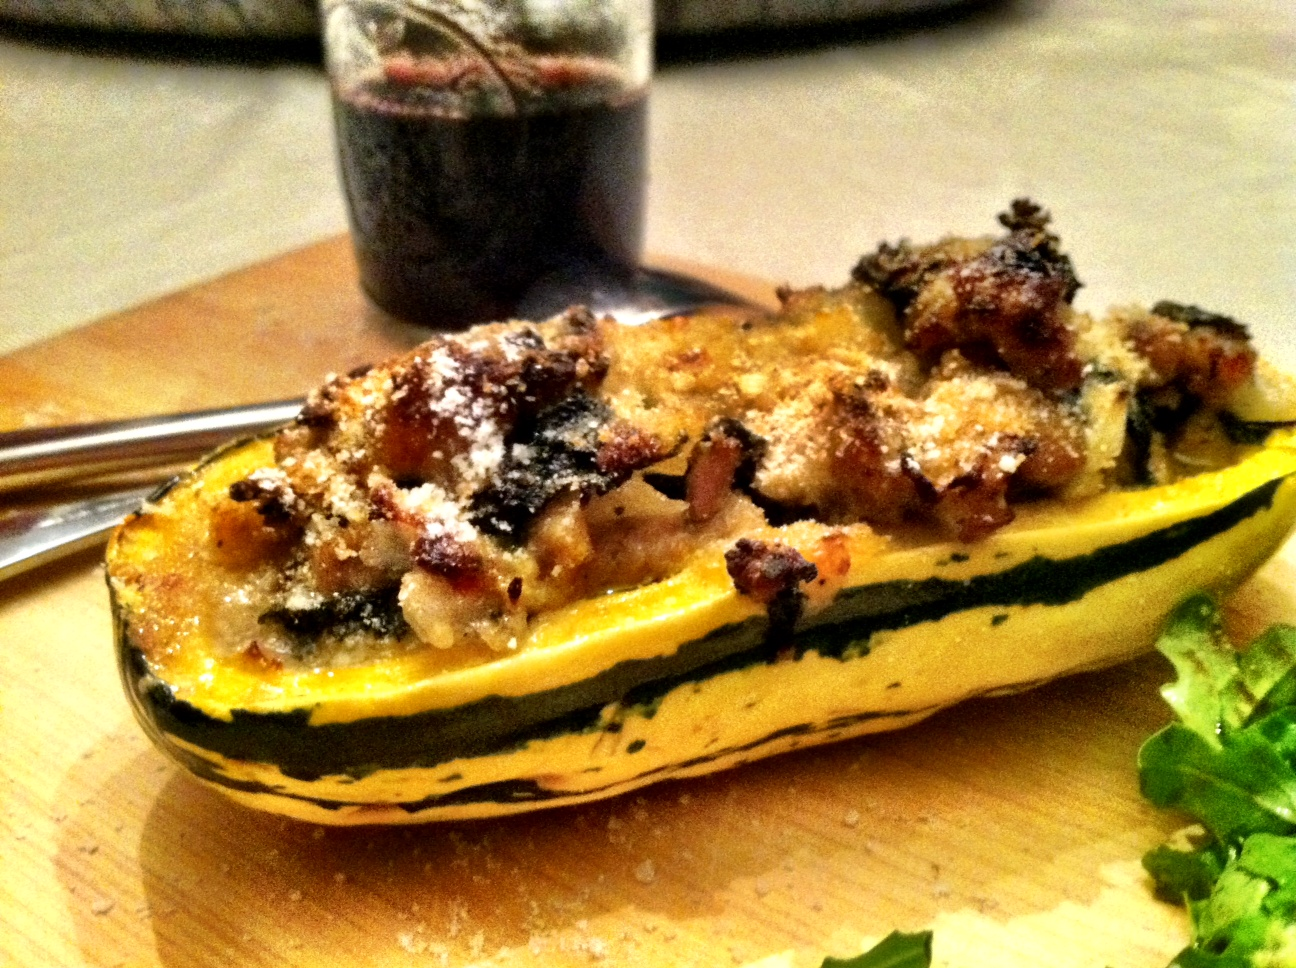 How about some kale and sausage stuffed delicata squash?